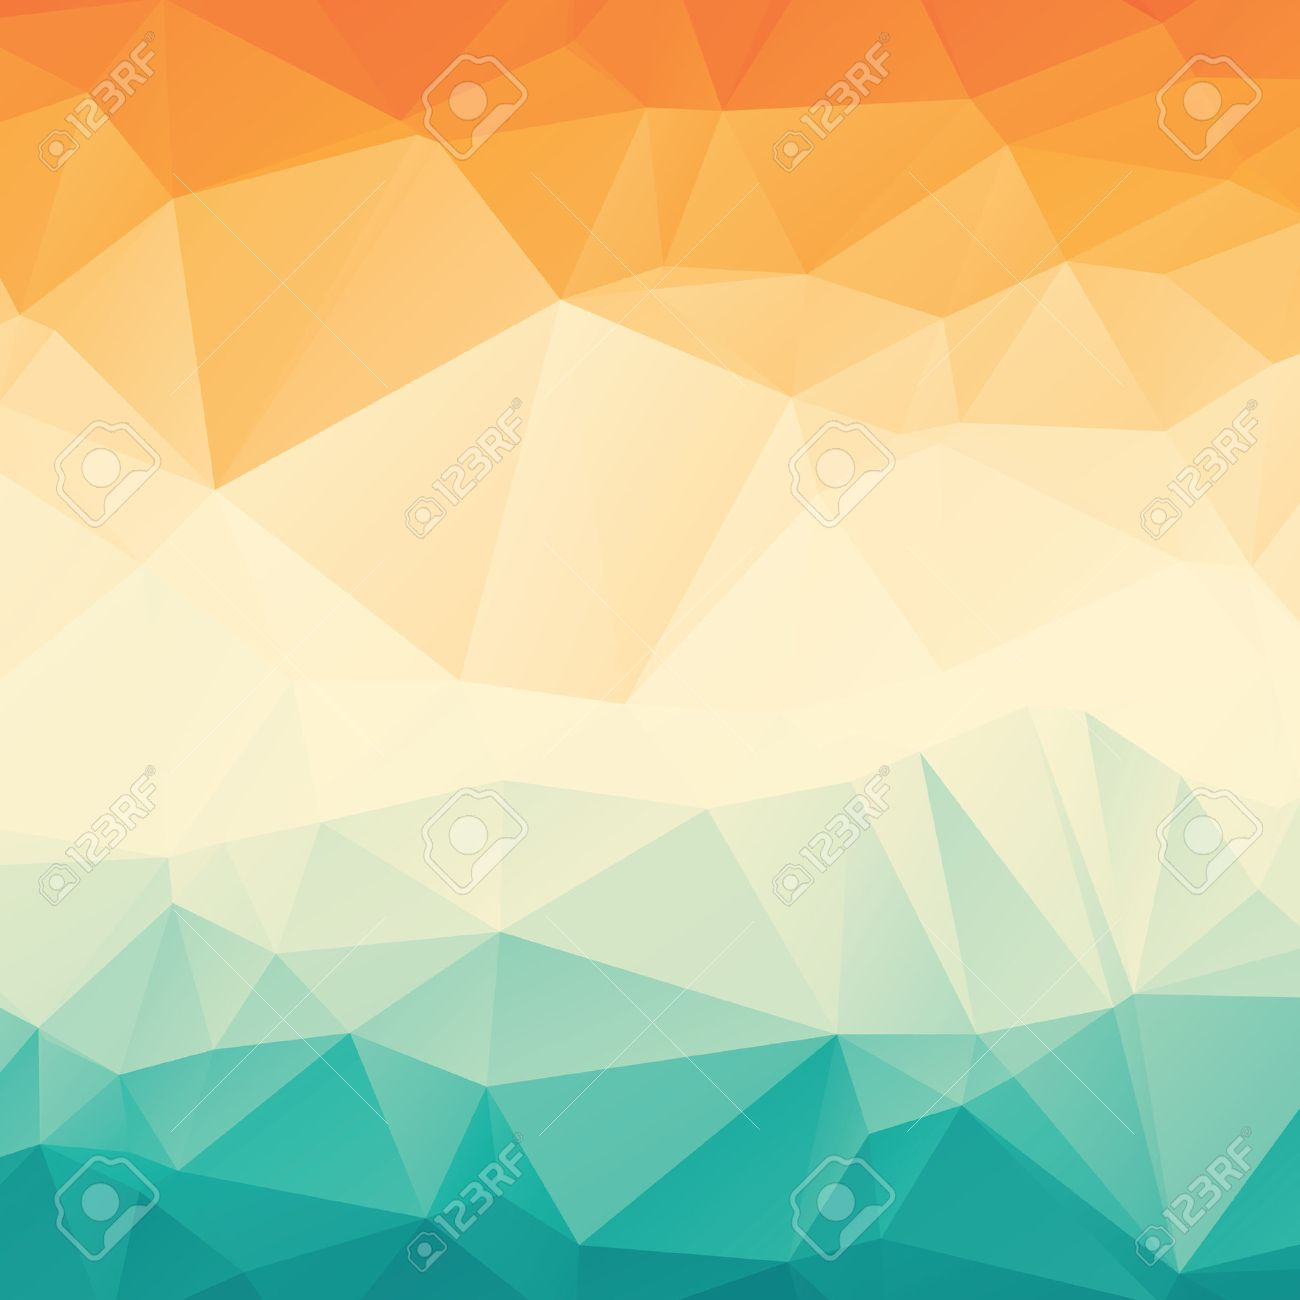 Stylish colorful orange blue gradient polygonal abstract background stylish colorful orange blue gradient polygonal abstract background stock vector 46065564 altavistaventures Images